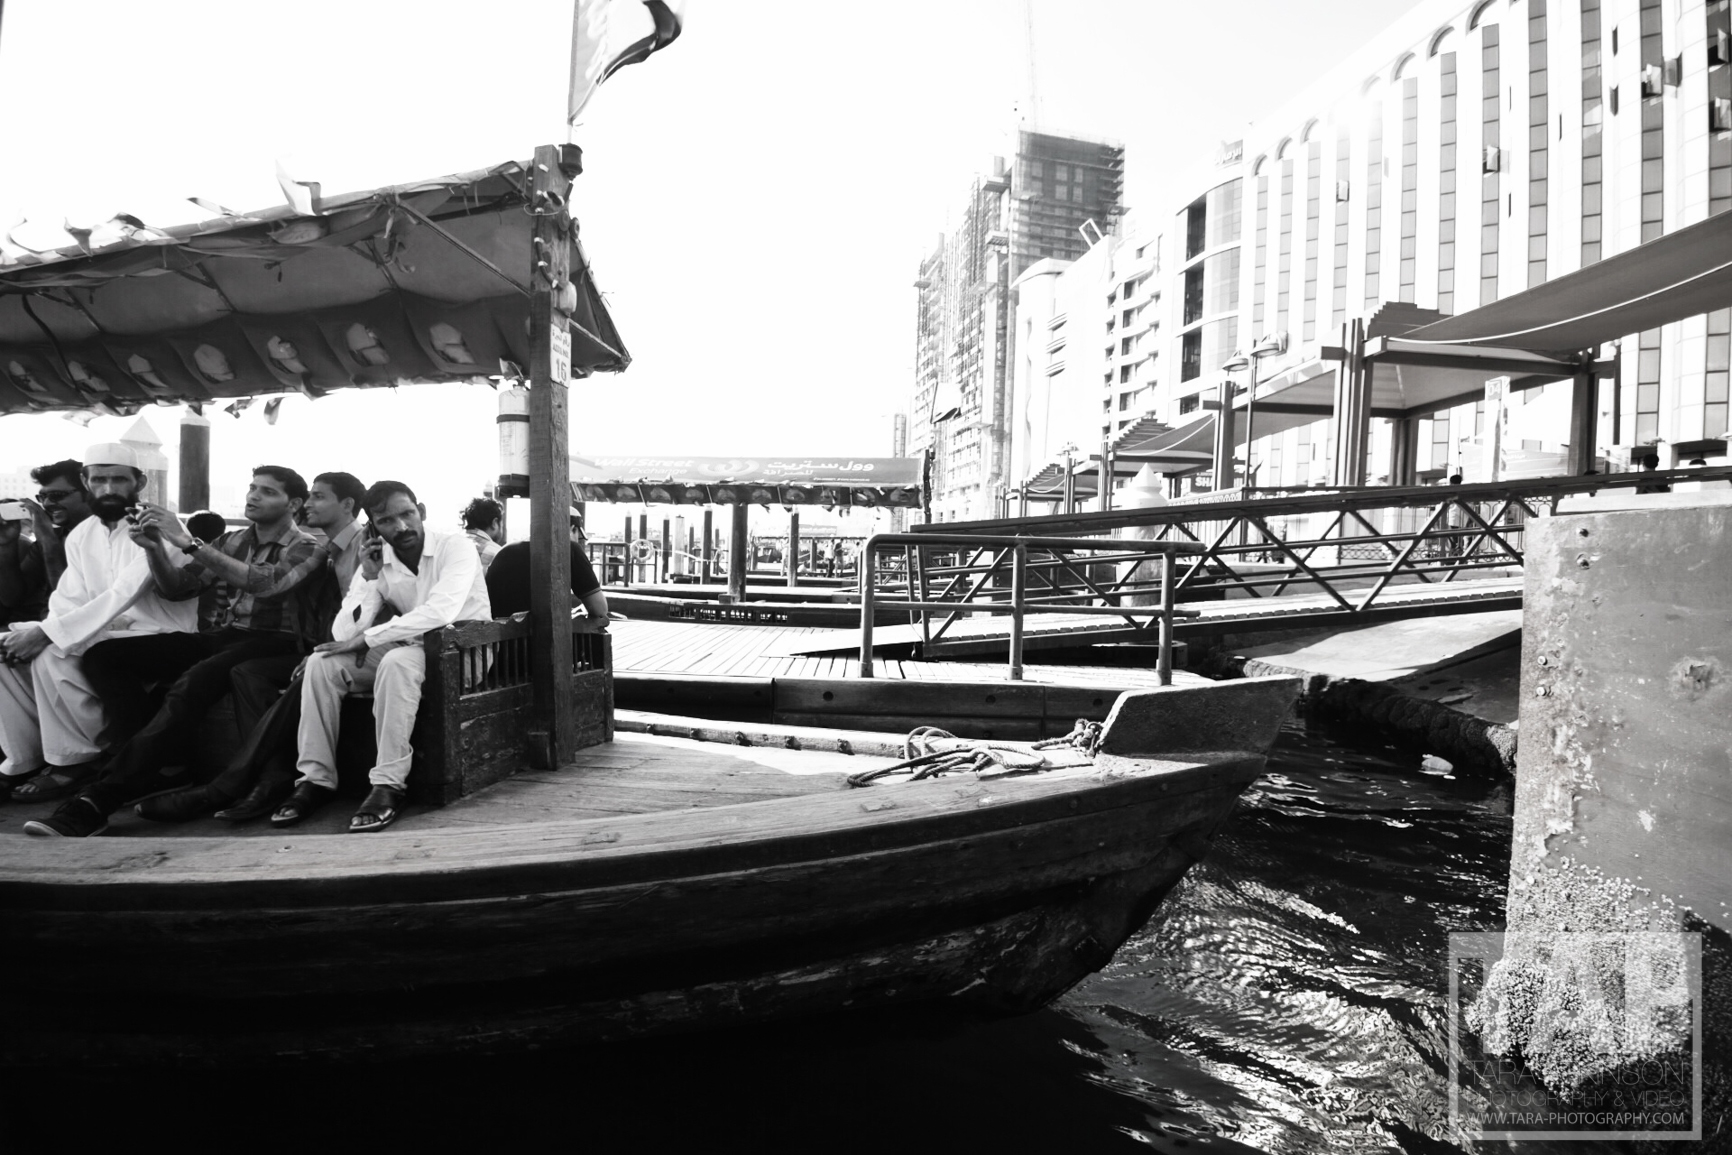 We walked further up to head over to Bur Dubai Souk at the abra station. To get from one side of the creek to the other abras aka ' water taxis' are used by tourists and workers.